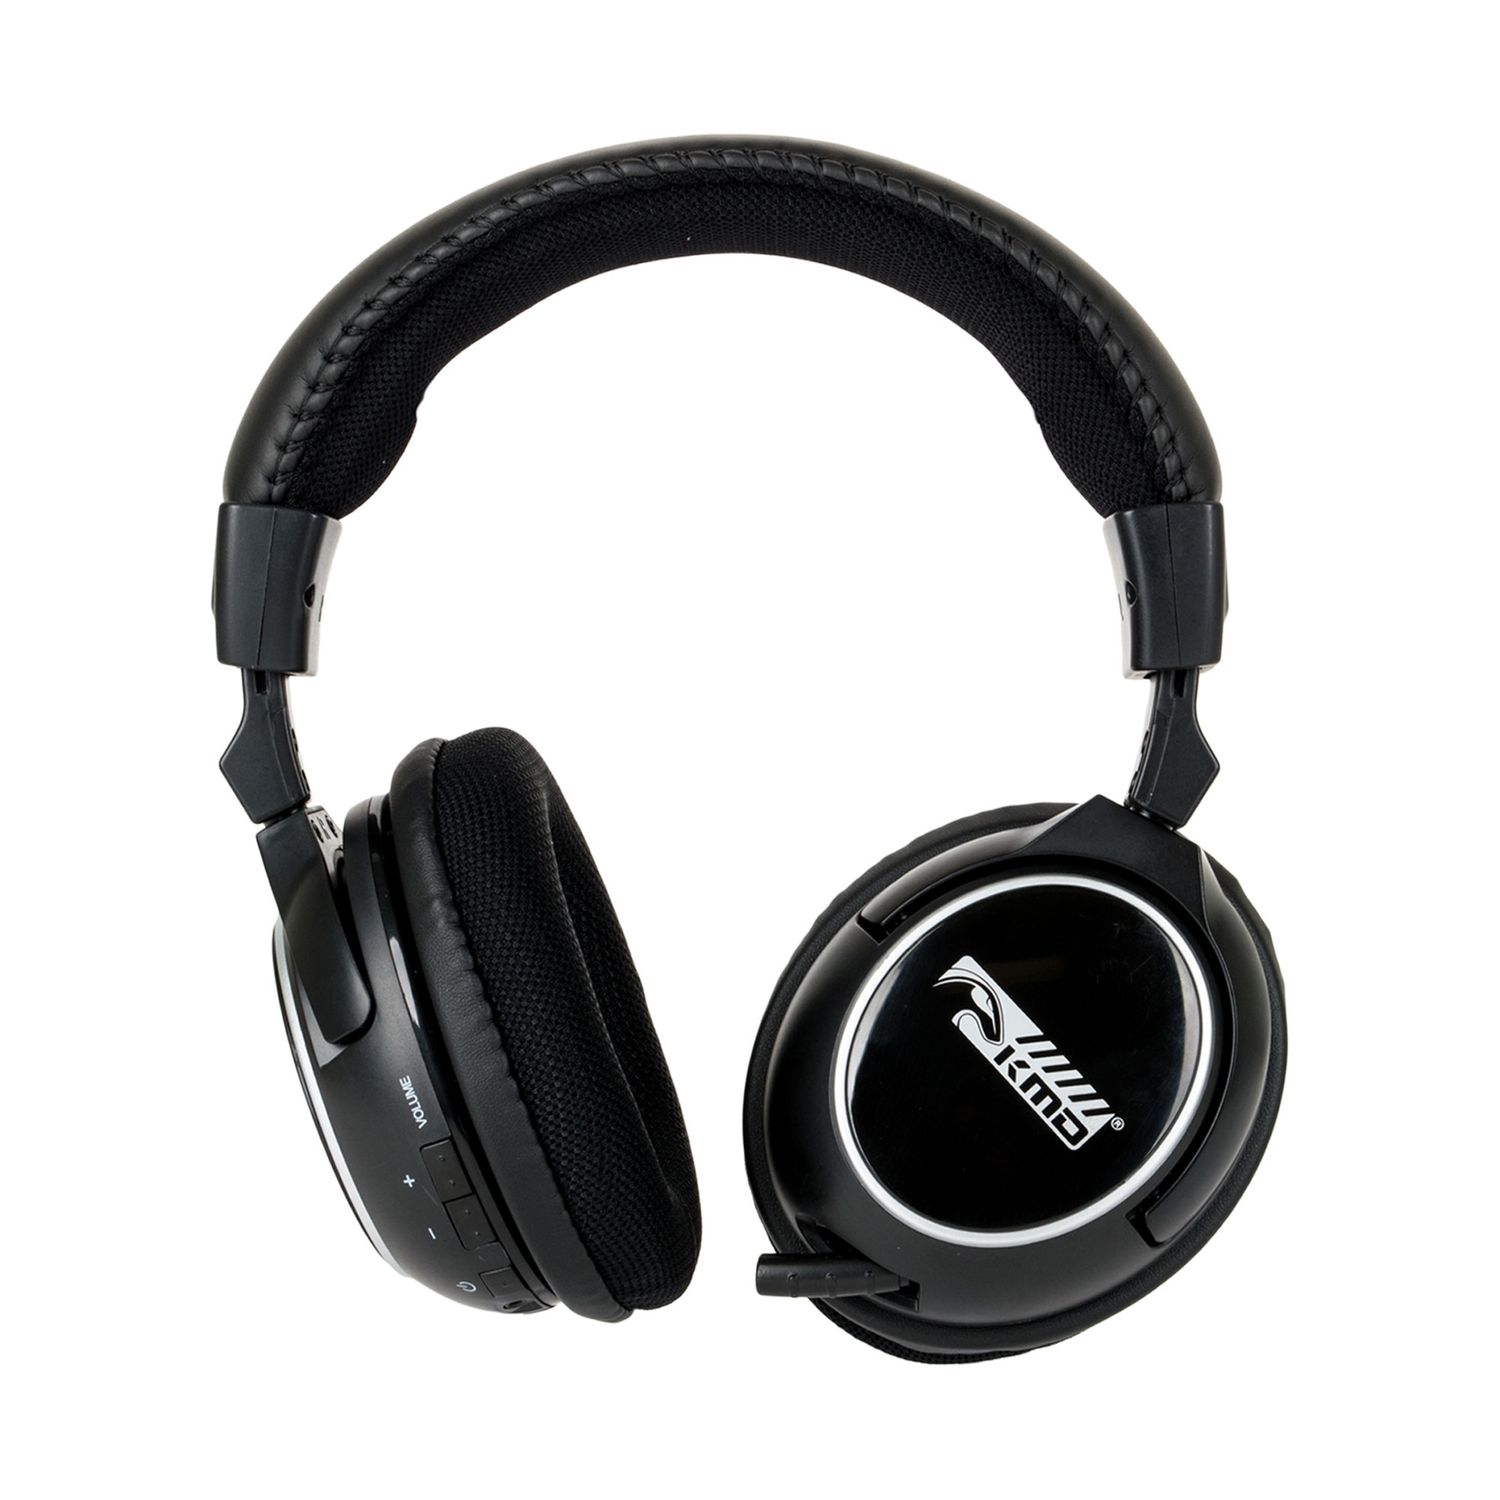 KMD Wireless Professional Gaming Headset With Microphone For PS3/Xbox 360/Mac/PC Black